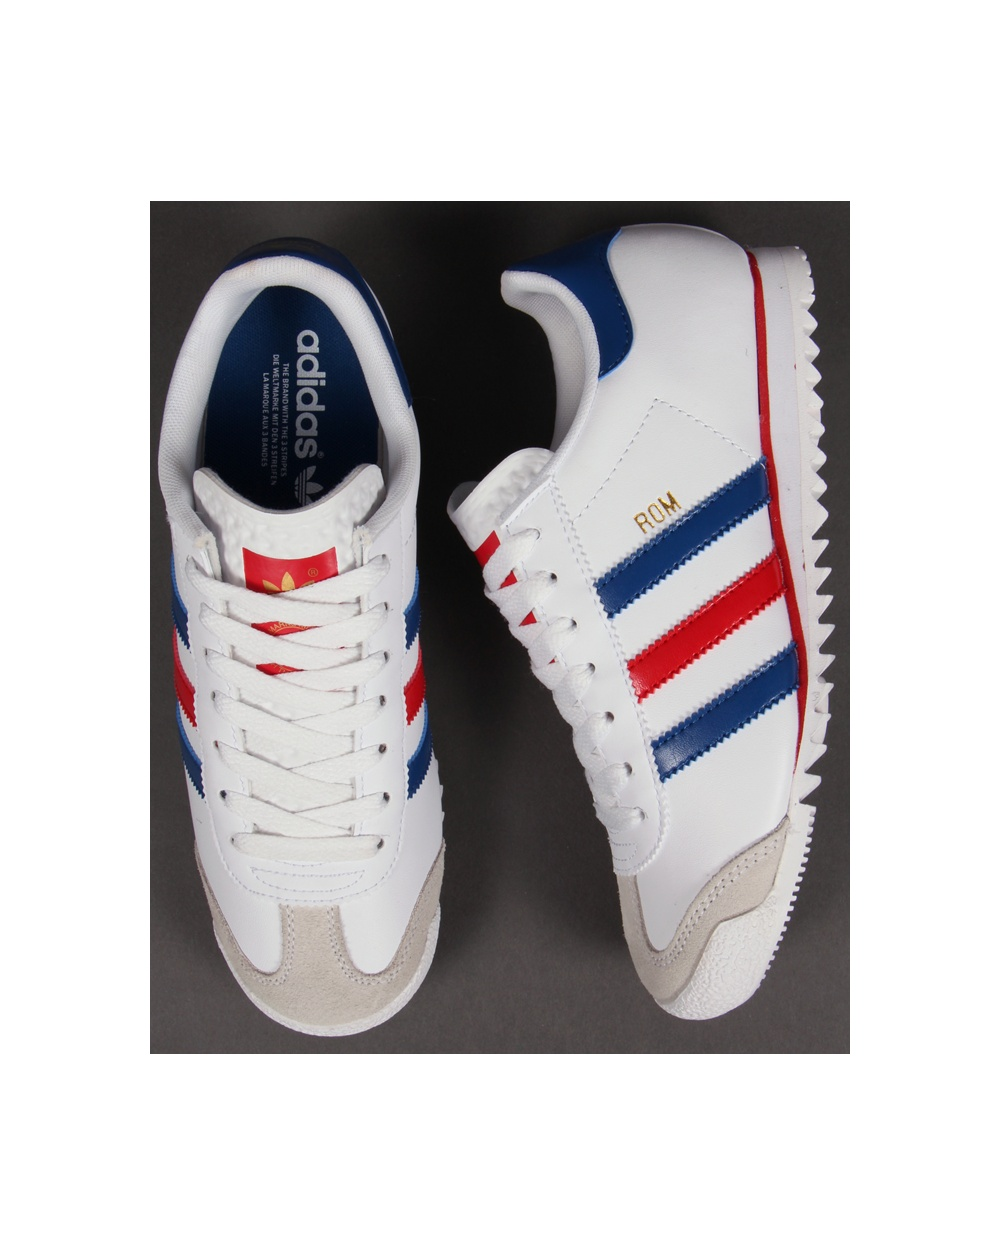 best service 2e32d 36330 Adidas Rom Trainers Whiteredblue